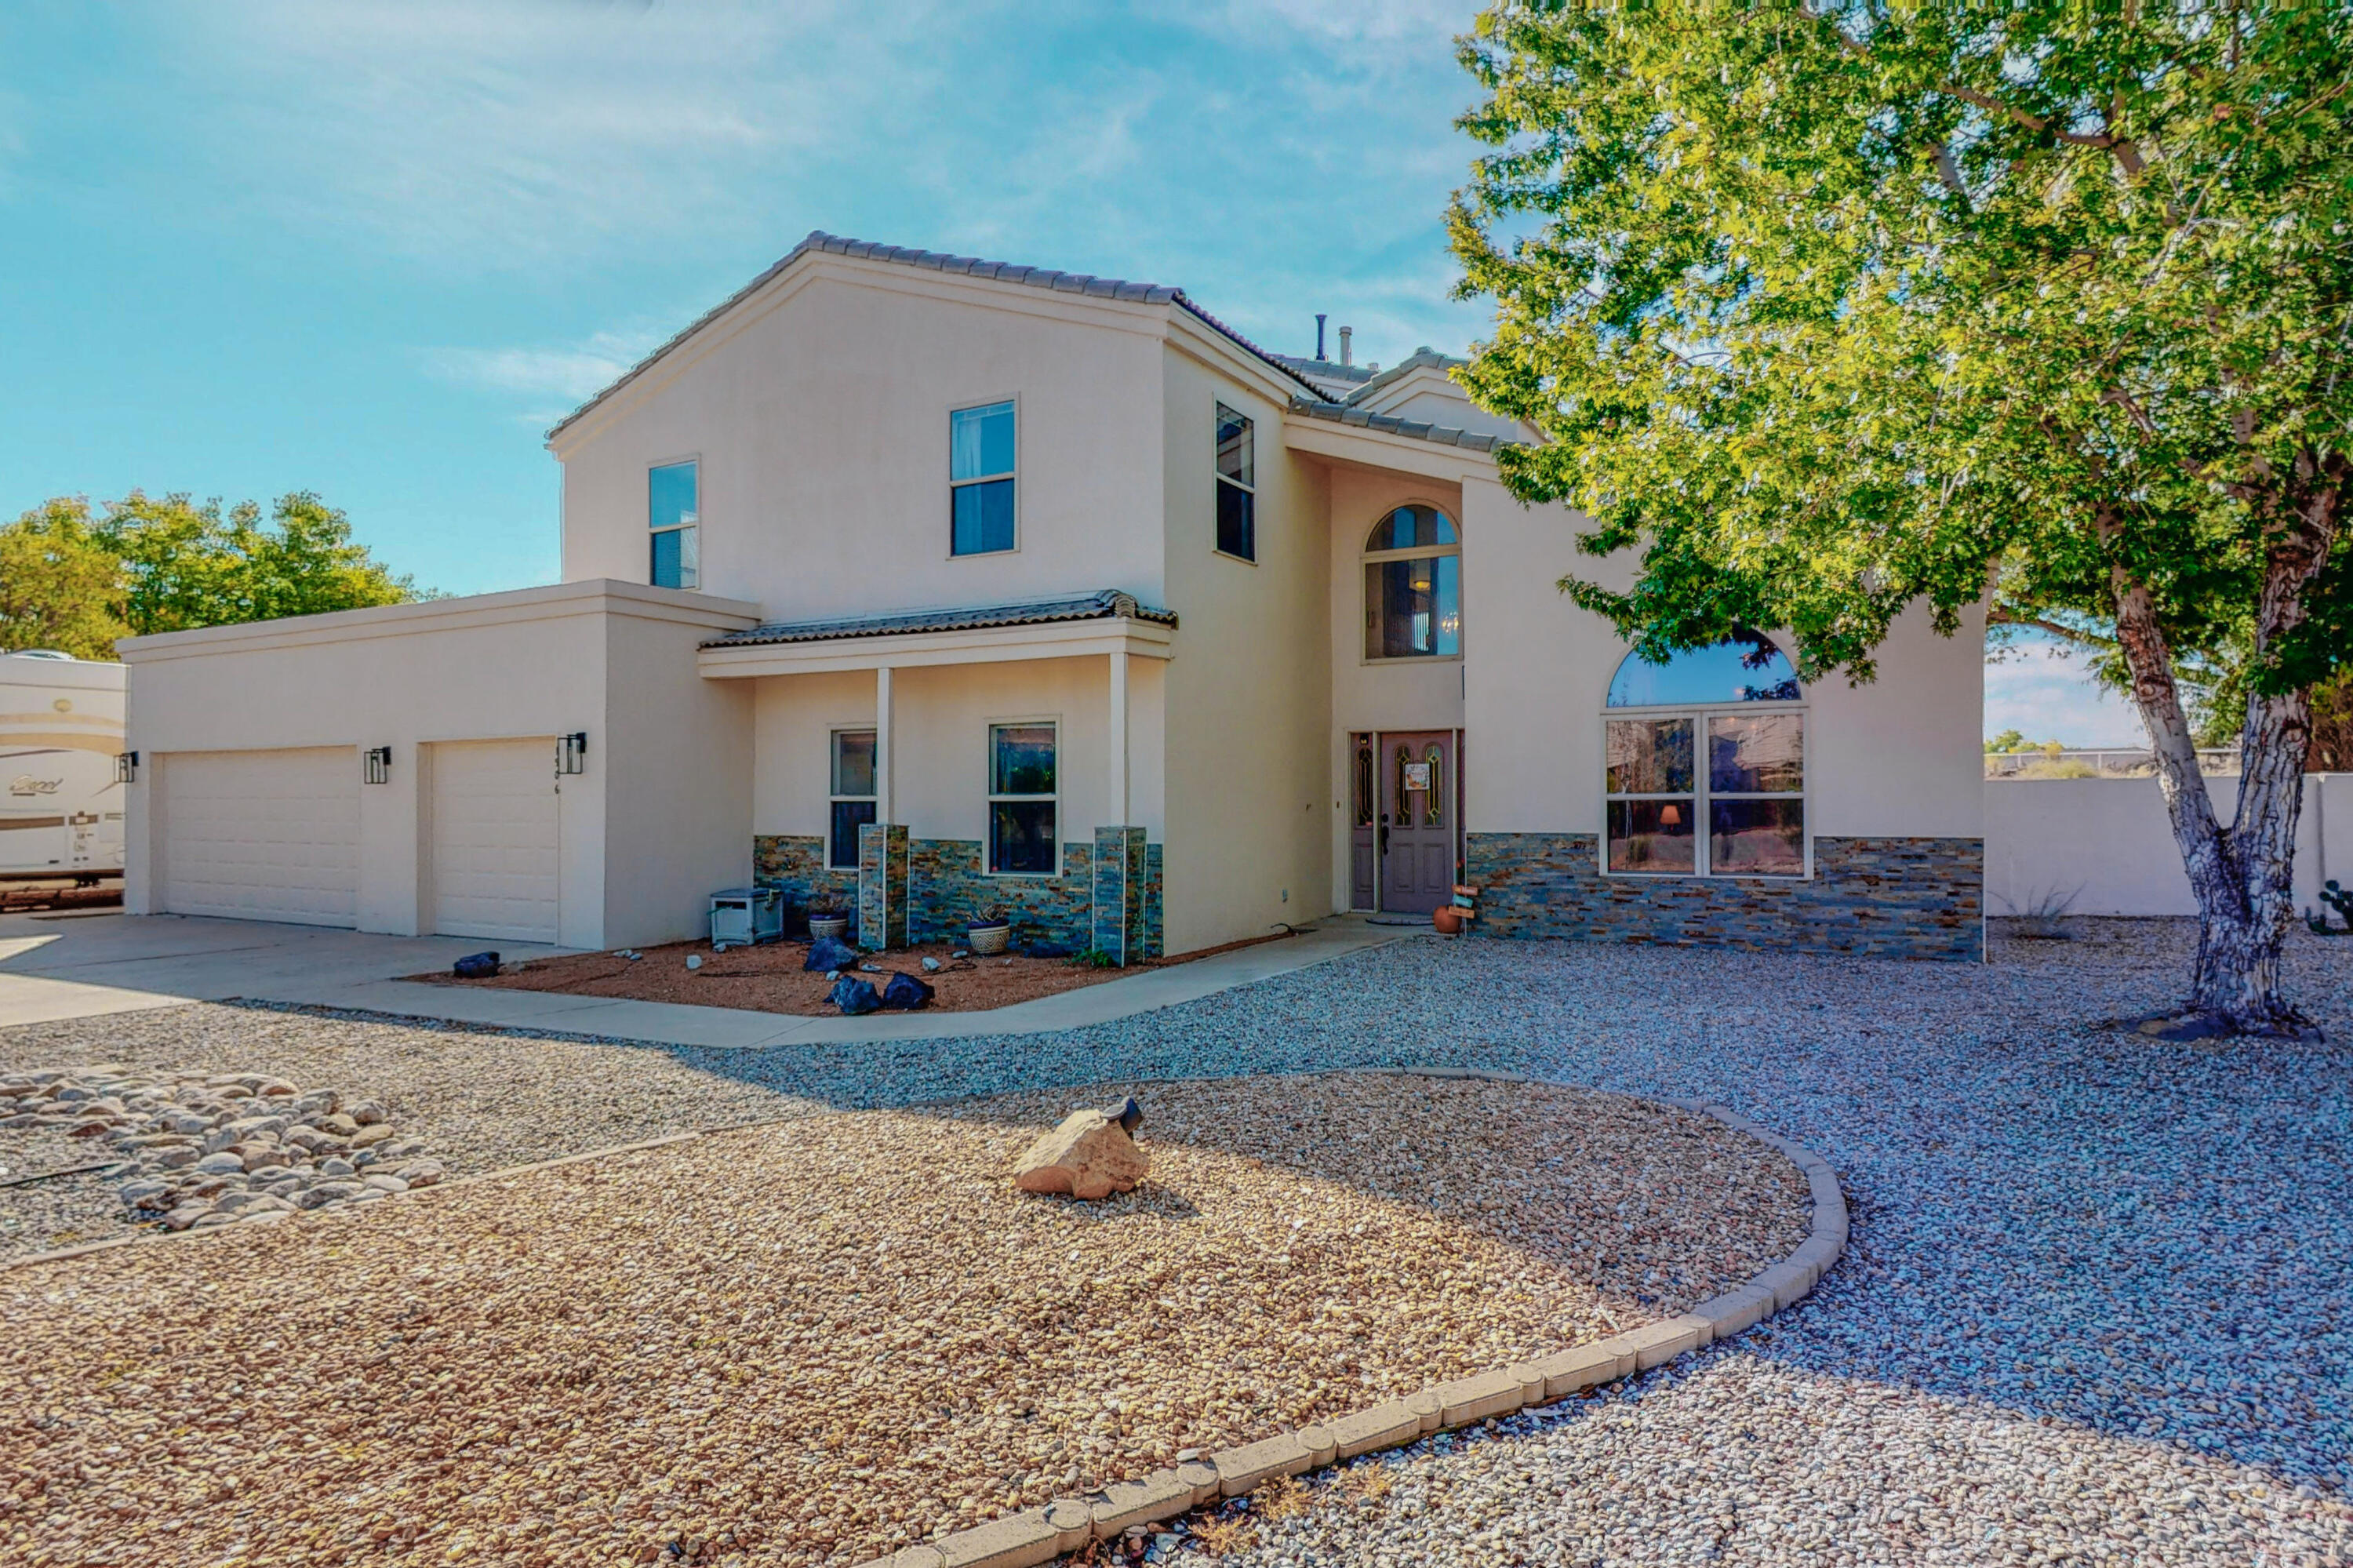 West River Beautiful 5 BR, 3BA in private Windmill Estates.  Open floor plan with Living/Dining combo, family room, plus sunny bonus room perfect for home office, playroom, or gym.  Kitchen w/island, large pantry, updated stainless appliances, and nook.  Spacious Owner's suite offers large walk-in closet, private office/sitting area, double sinks, & jetted garden tub. Bedroom on main floor could serve as 2nd owner's suite or in-laws area. Huge 3/4 acre lot . Relax in the peaceful back yard with lush landscape, trex deck, flag stone patio, & new hot tub. The 3 car garage has extra storage, side RV parking/hookup, plus storage shed. Recent updates include stucco, stacked stone accents , decking and roof. The possibilities are endless!   File opened @ Stewart Title, Monica Borrego.